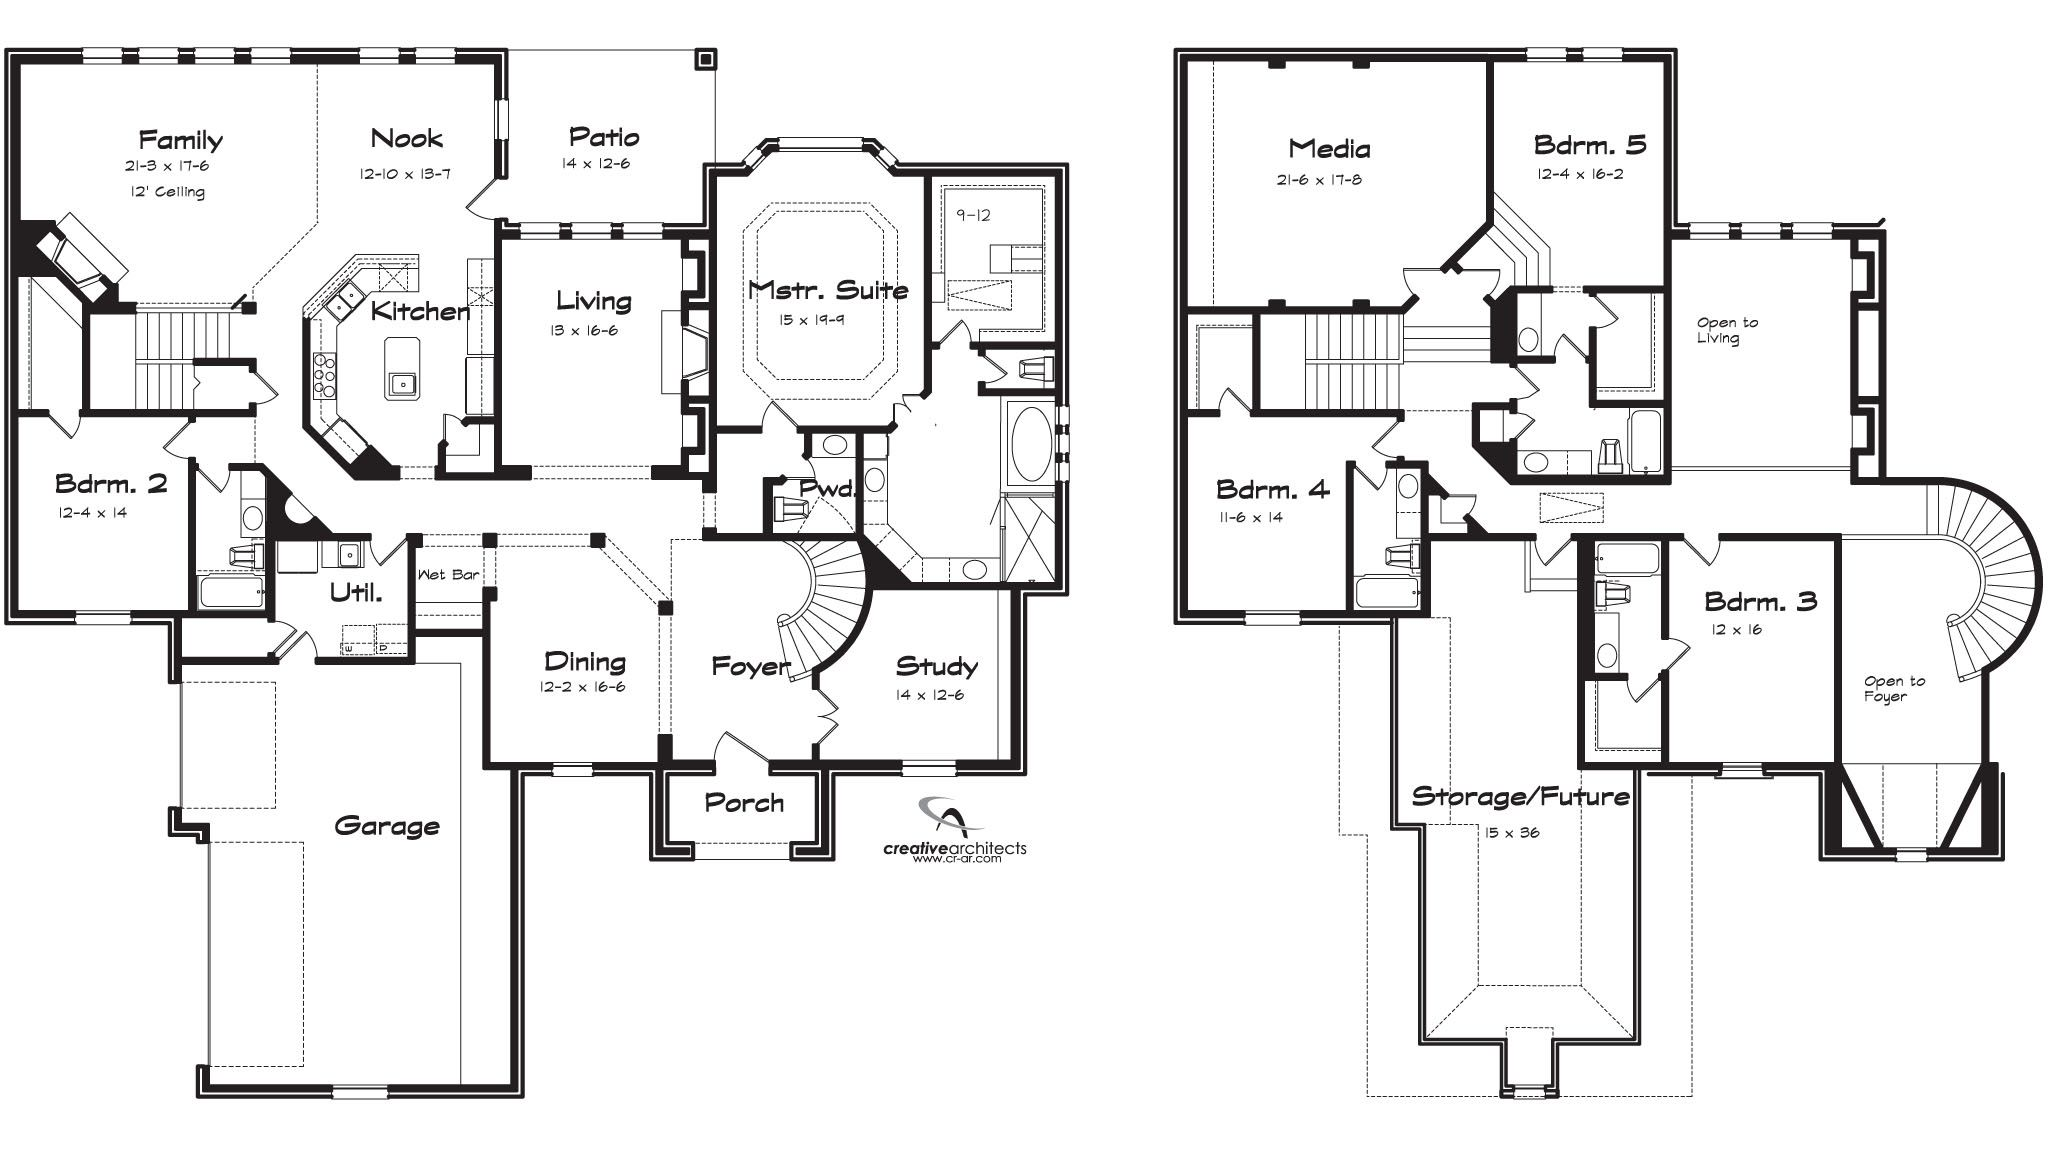 2 story 5 bedroom house plans comfortable eastwood texas for 2 story 2 bedroom apartment plans